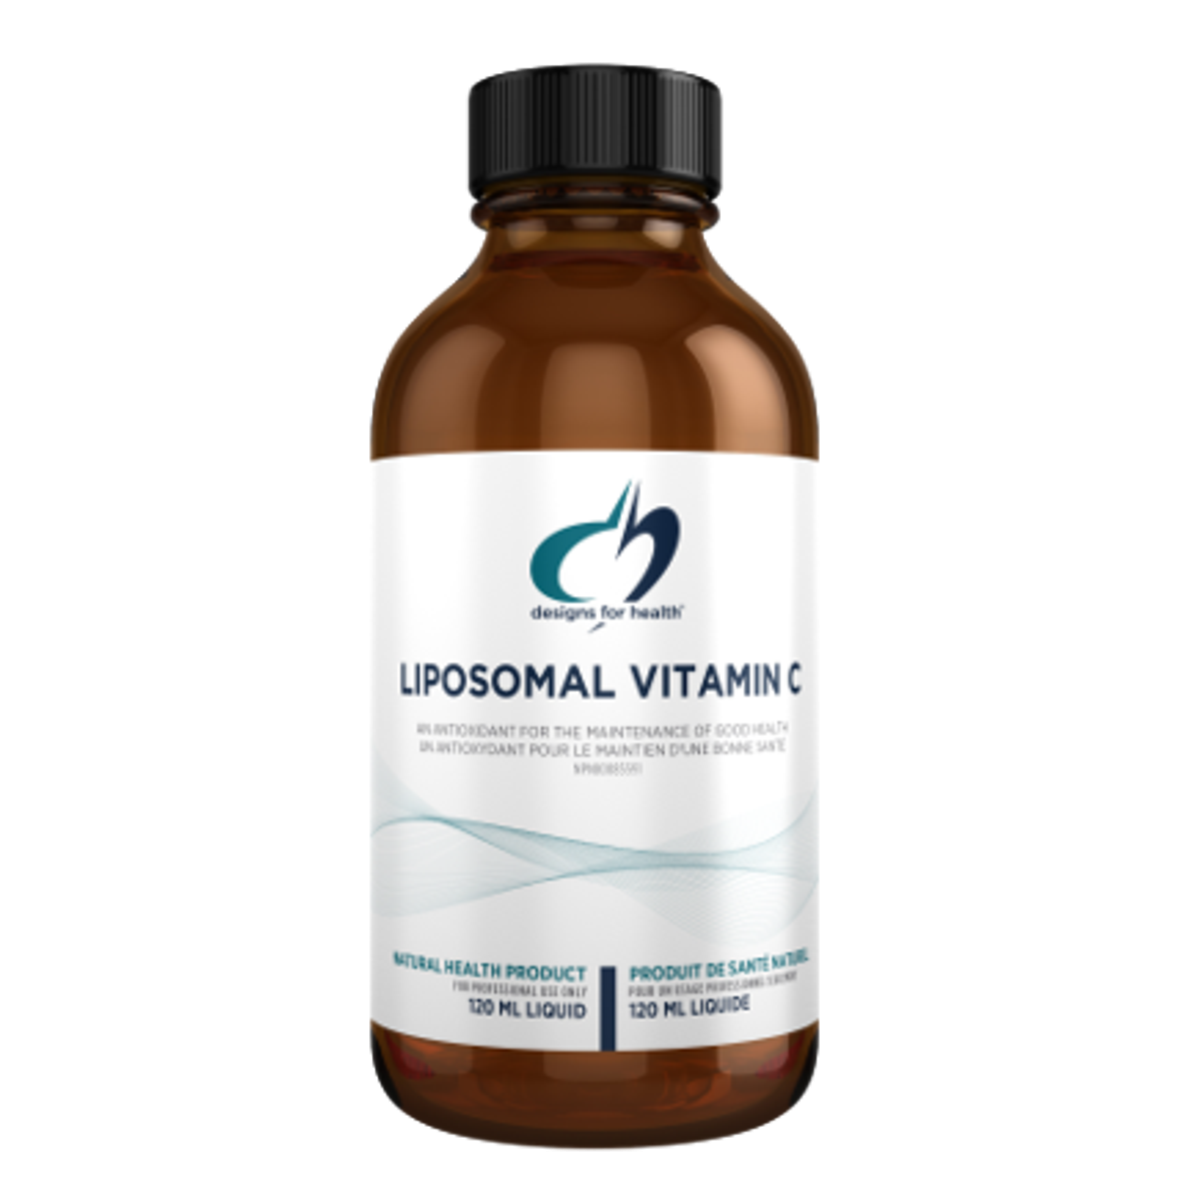 Liposomal Vitamin C, 120 mL - iwellnessbox